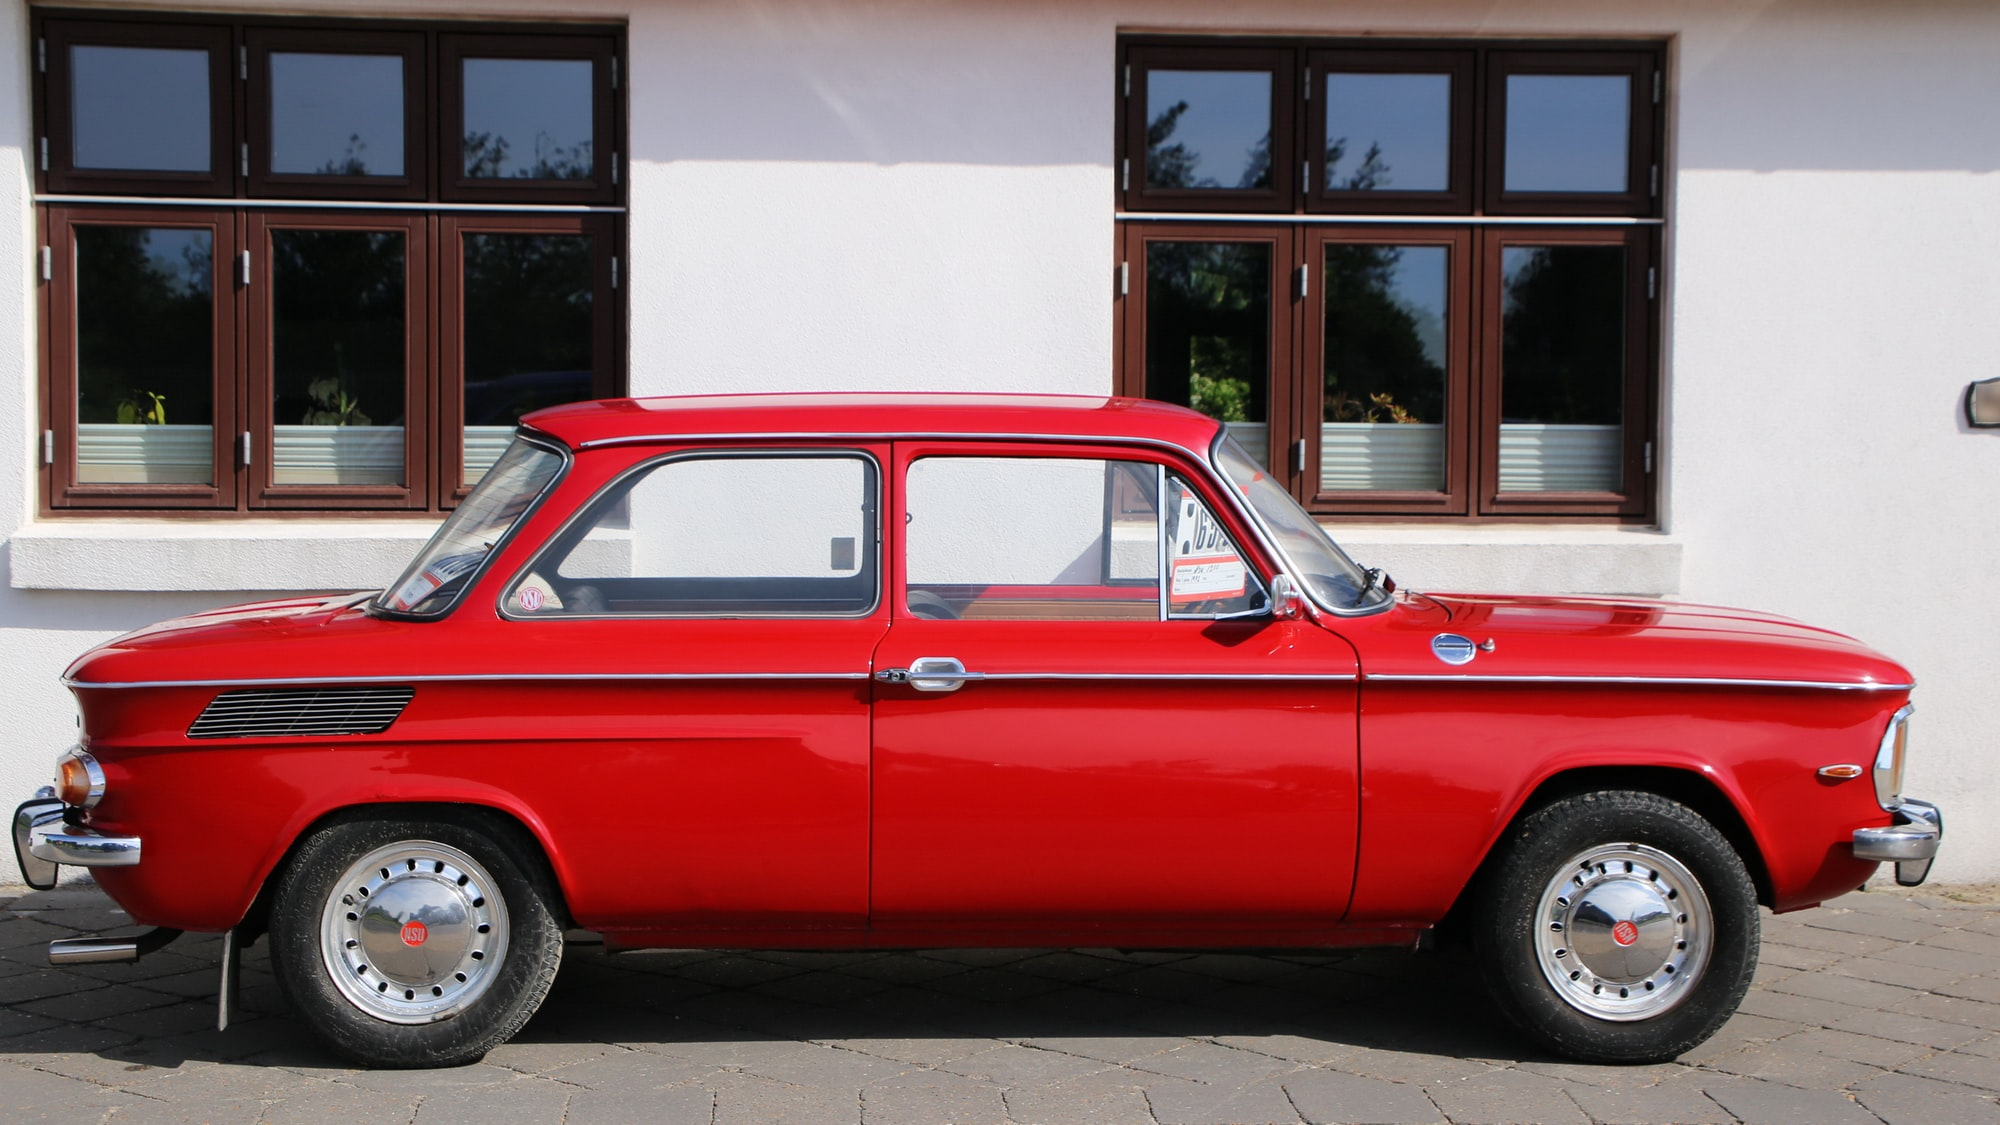 An old NSU 1200C in red.